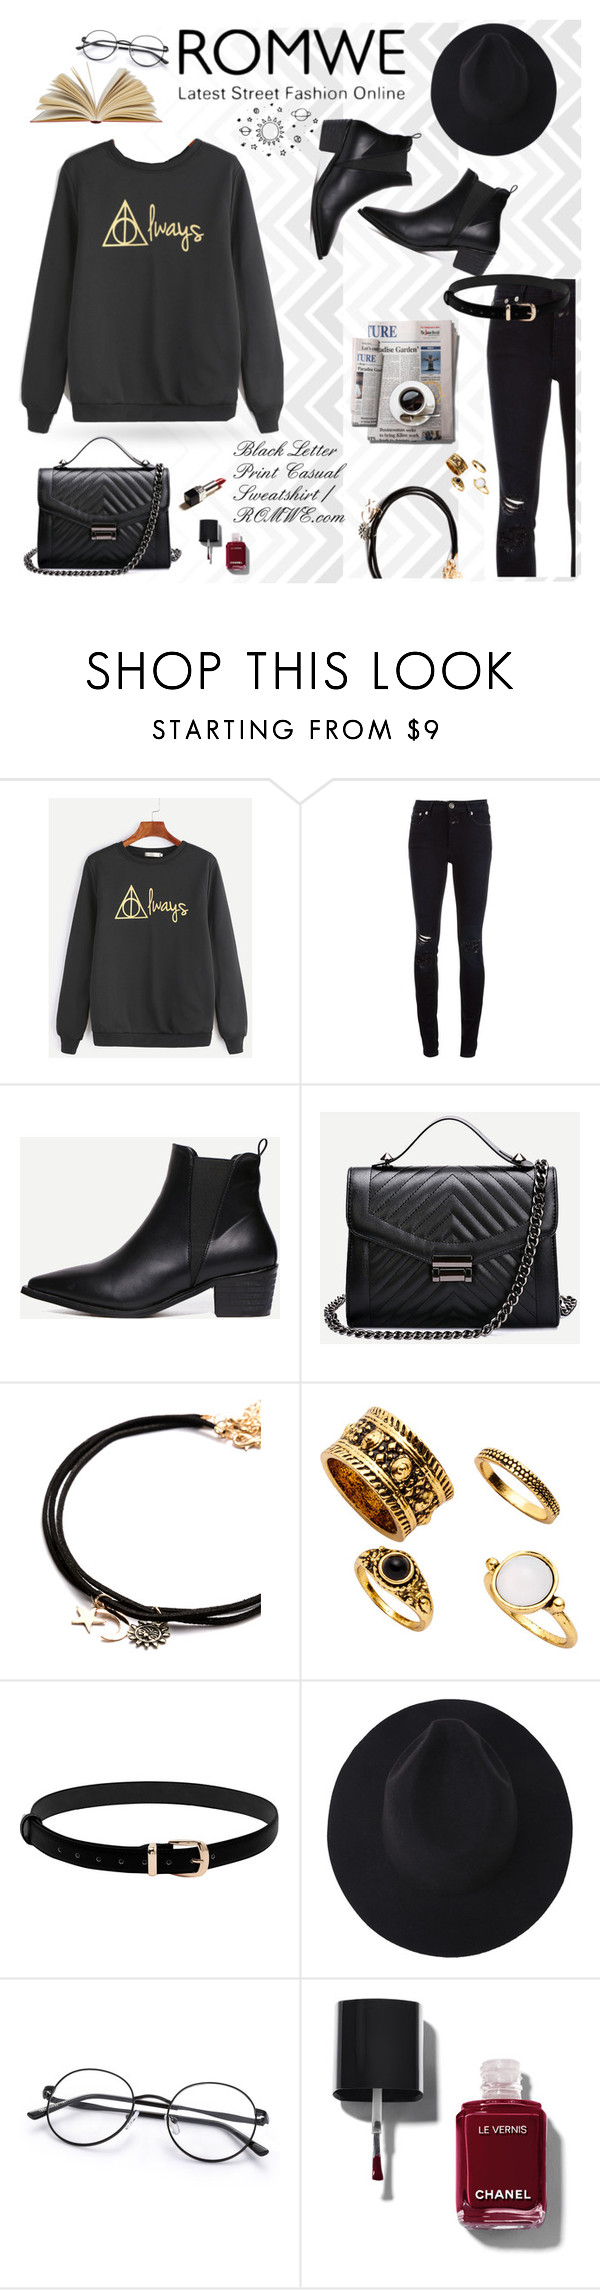 """ROMWE Black Letter Print Casual Sweatshirt"" by miss-maca ❤ liked on Polyvore featuring Seed Design, Closed, Chanel and 7 For All Mankind"